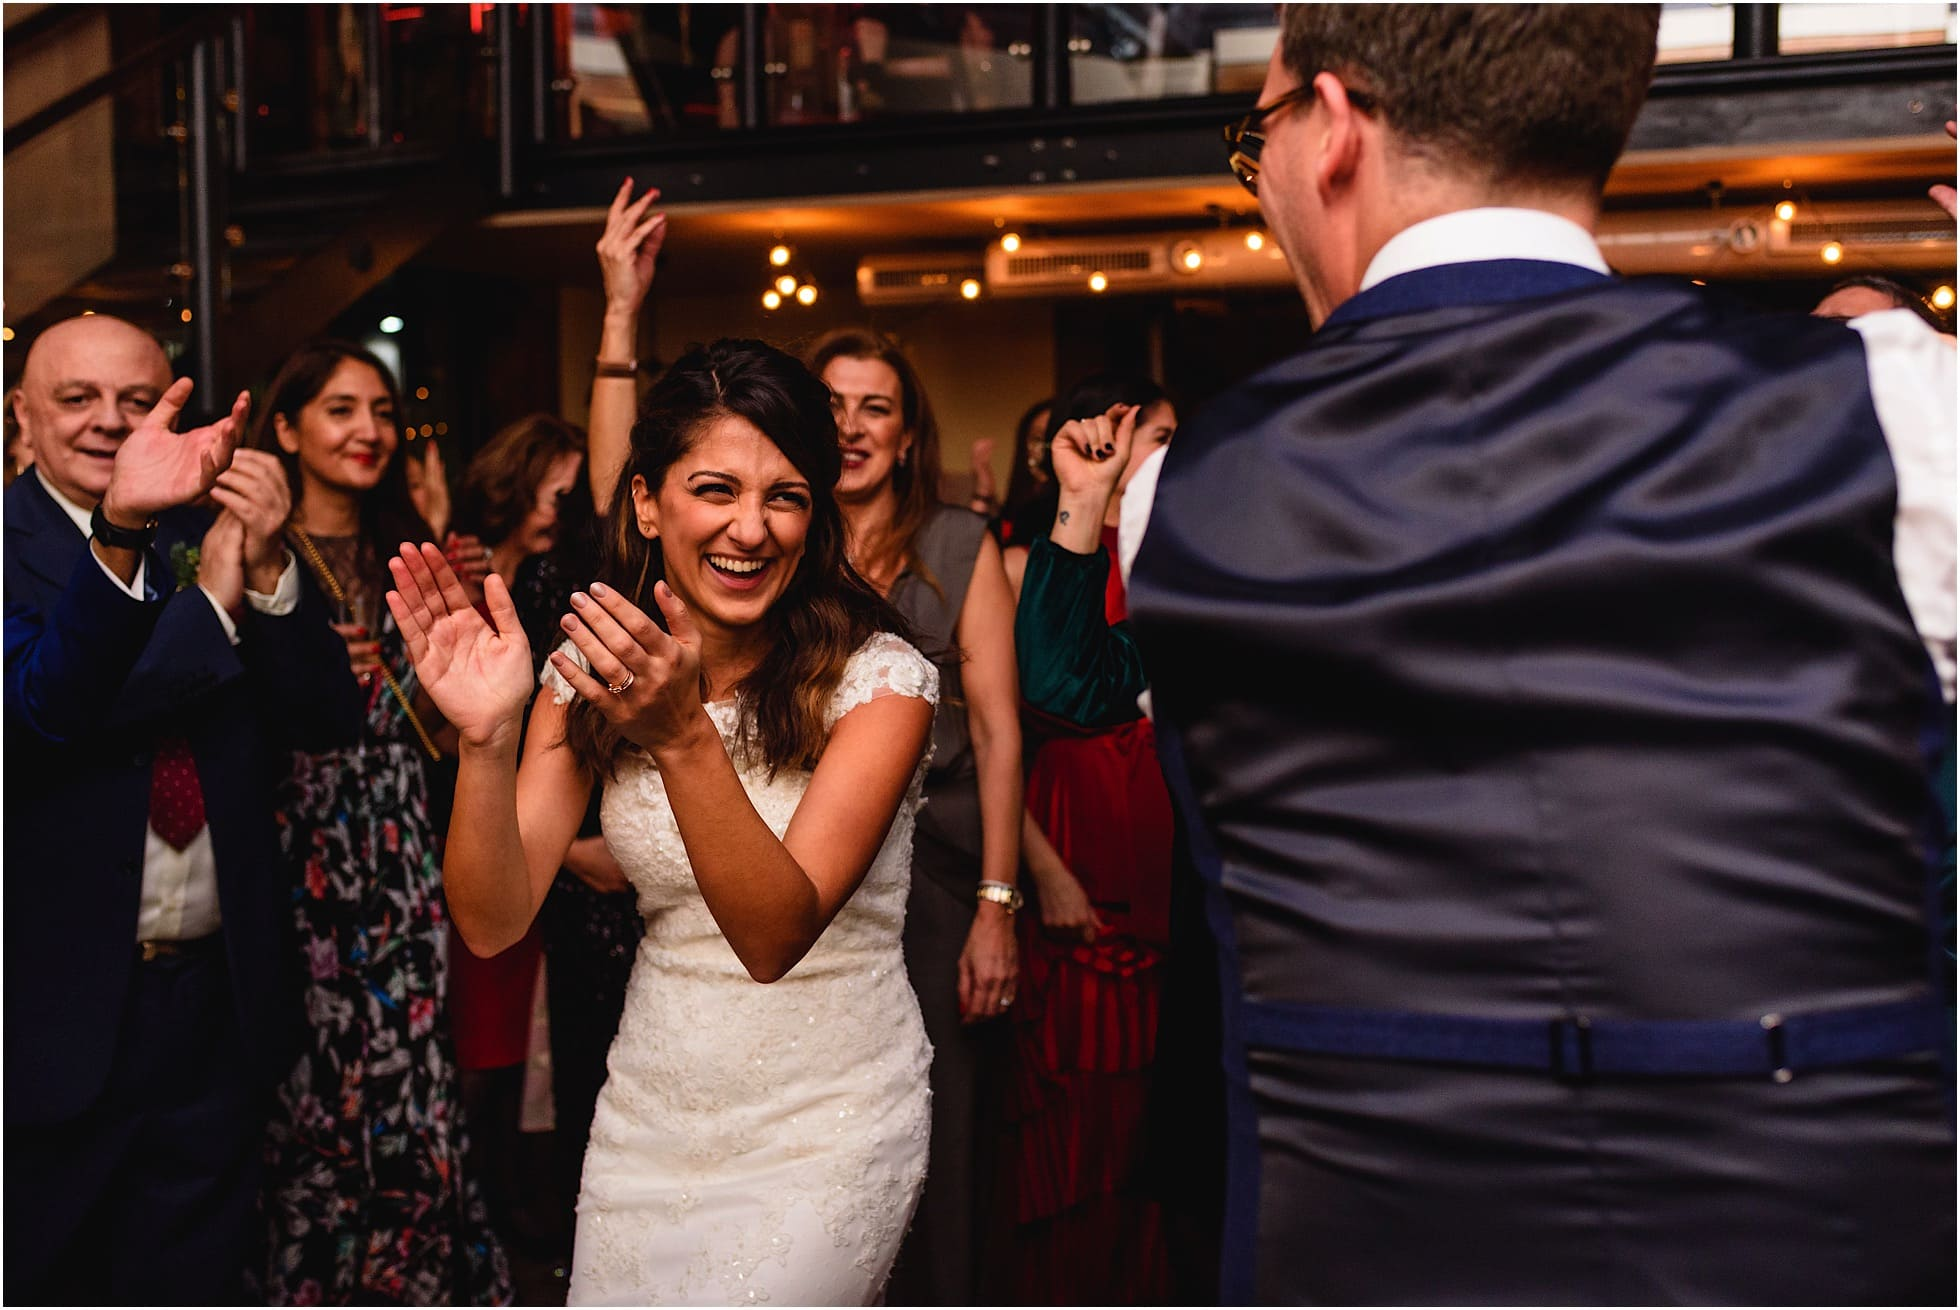 bride and groom dancing at london pub wedding